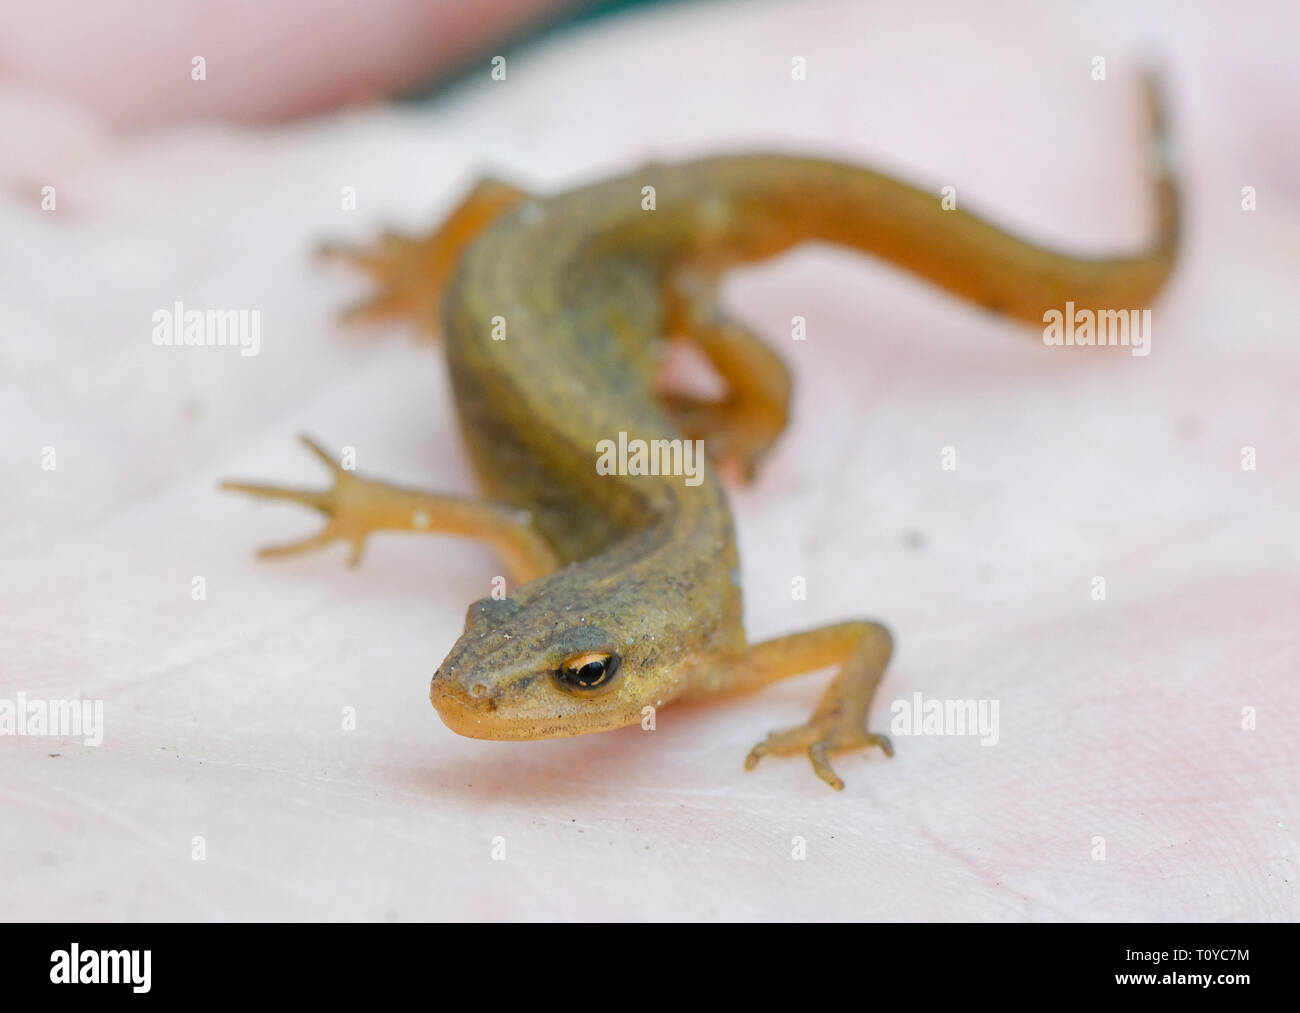 22 March 2019, Brandenburg, Sauen: A female pond newt (Triturus vulgaris) can be seen on the hand of a conservationist in the forest of the August Bier Foundation. Due to the mild spring weather the migration of newts and toads to their light waters is in full swing. Photo: Patrick Pleul/dpa-Zentralbild/ZB - Stock Image